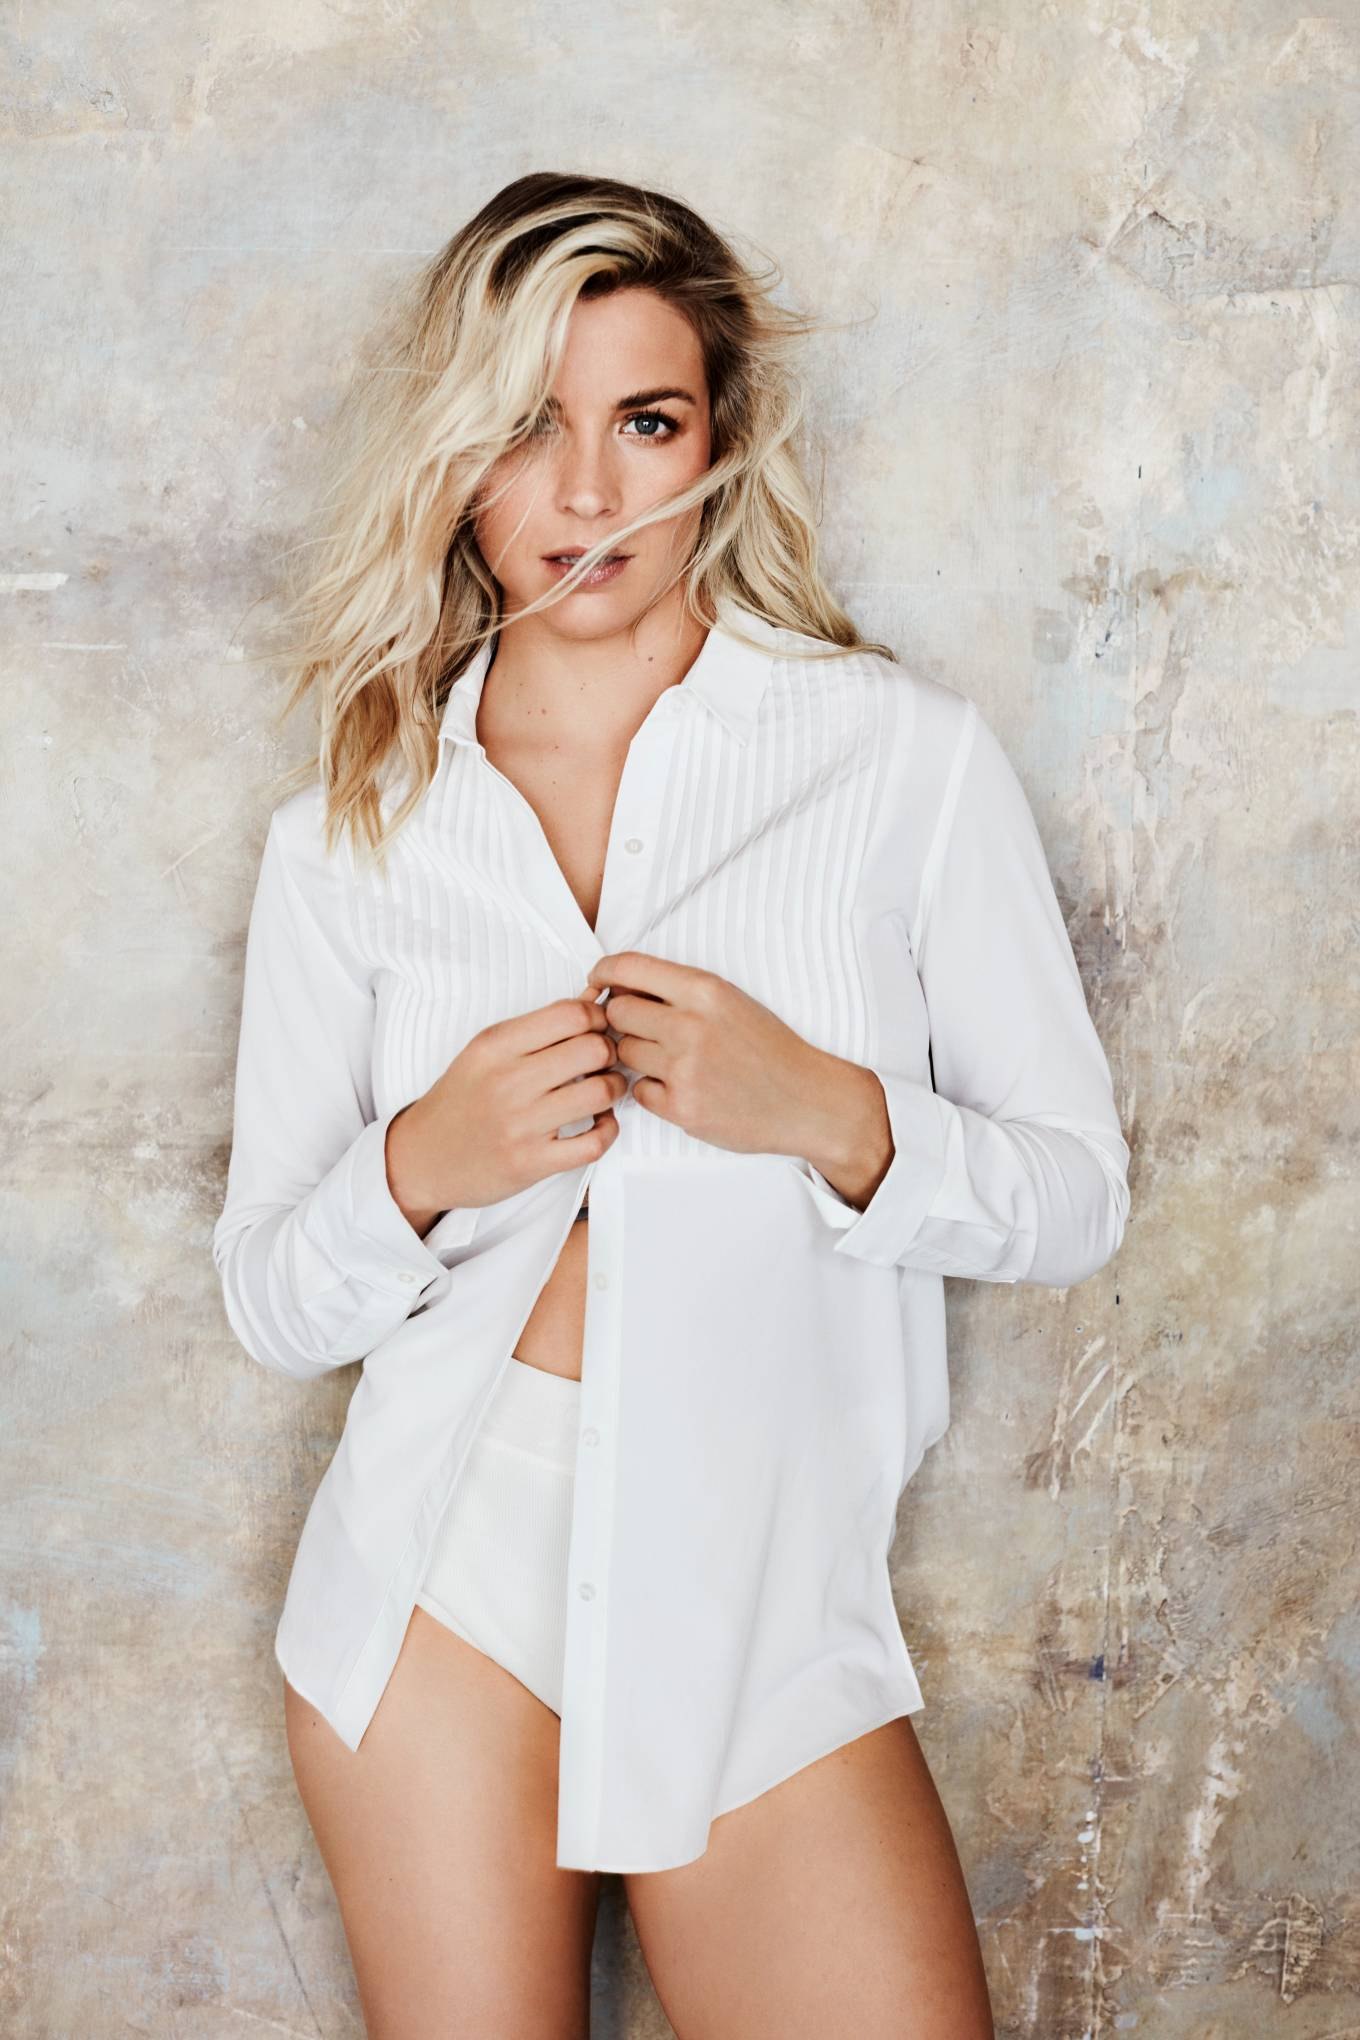 Gemma Atkinson - Mark Hayman Photoshoot - October 2020